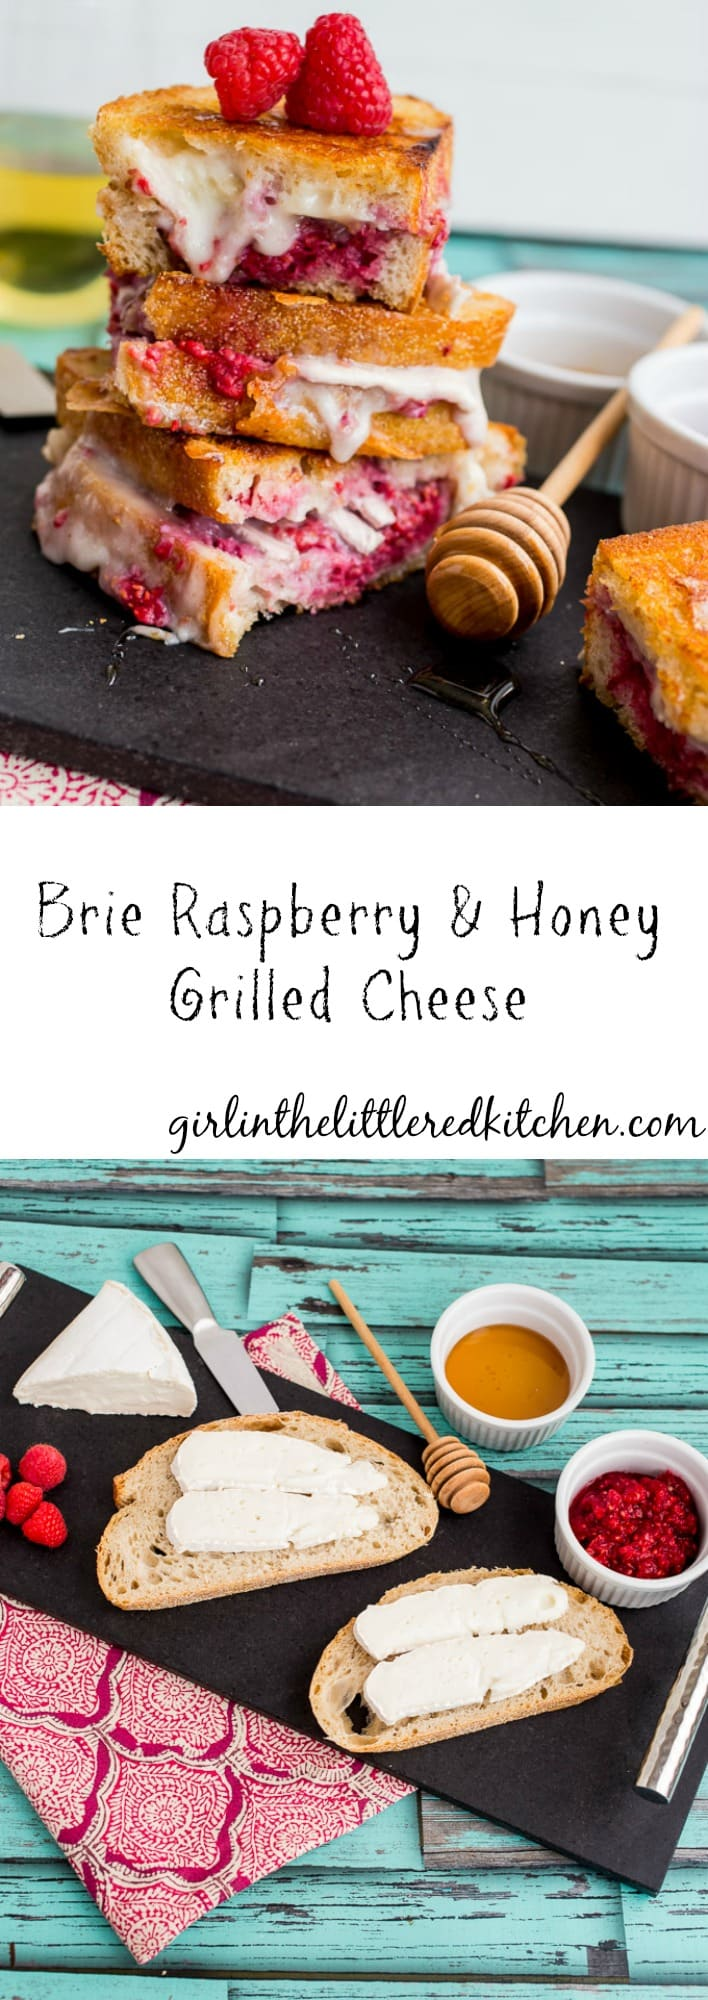 Brie Raspberry and Honey Grilled Cheese | girlinthelittleredkitchen